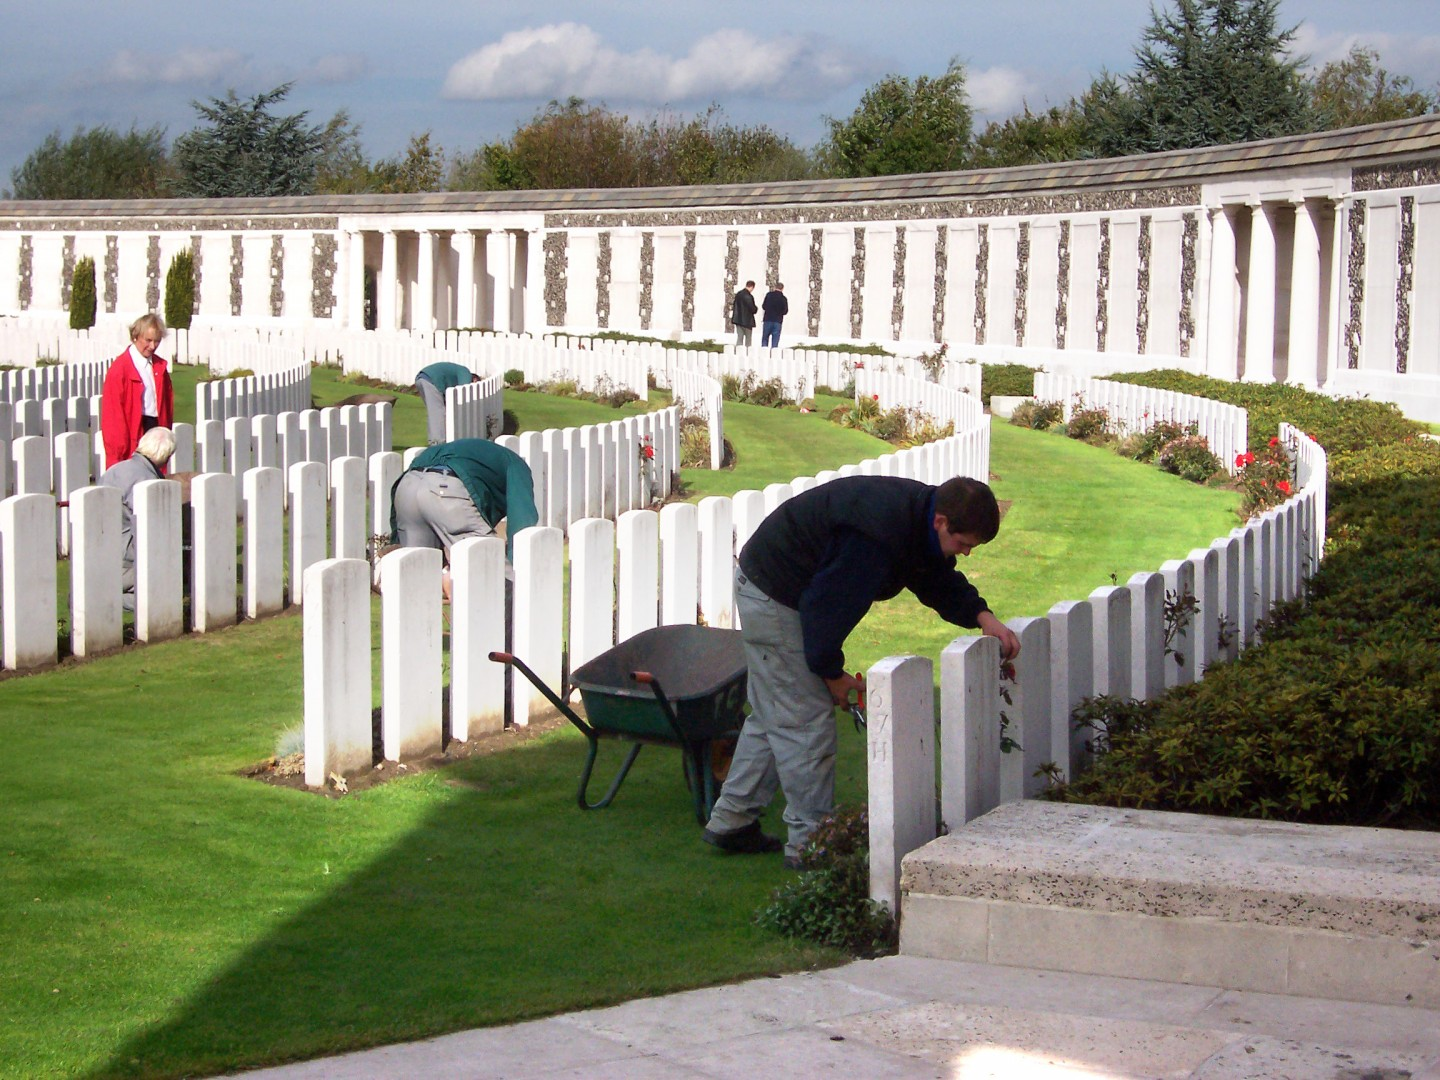 Tyne Cot Cemetary WW1 battlefields ©Commonwealth War Graves Commission